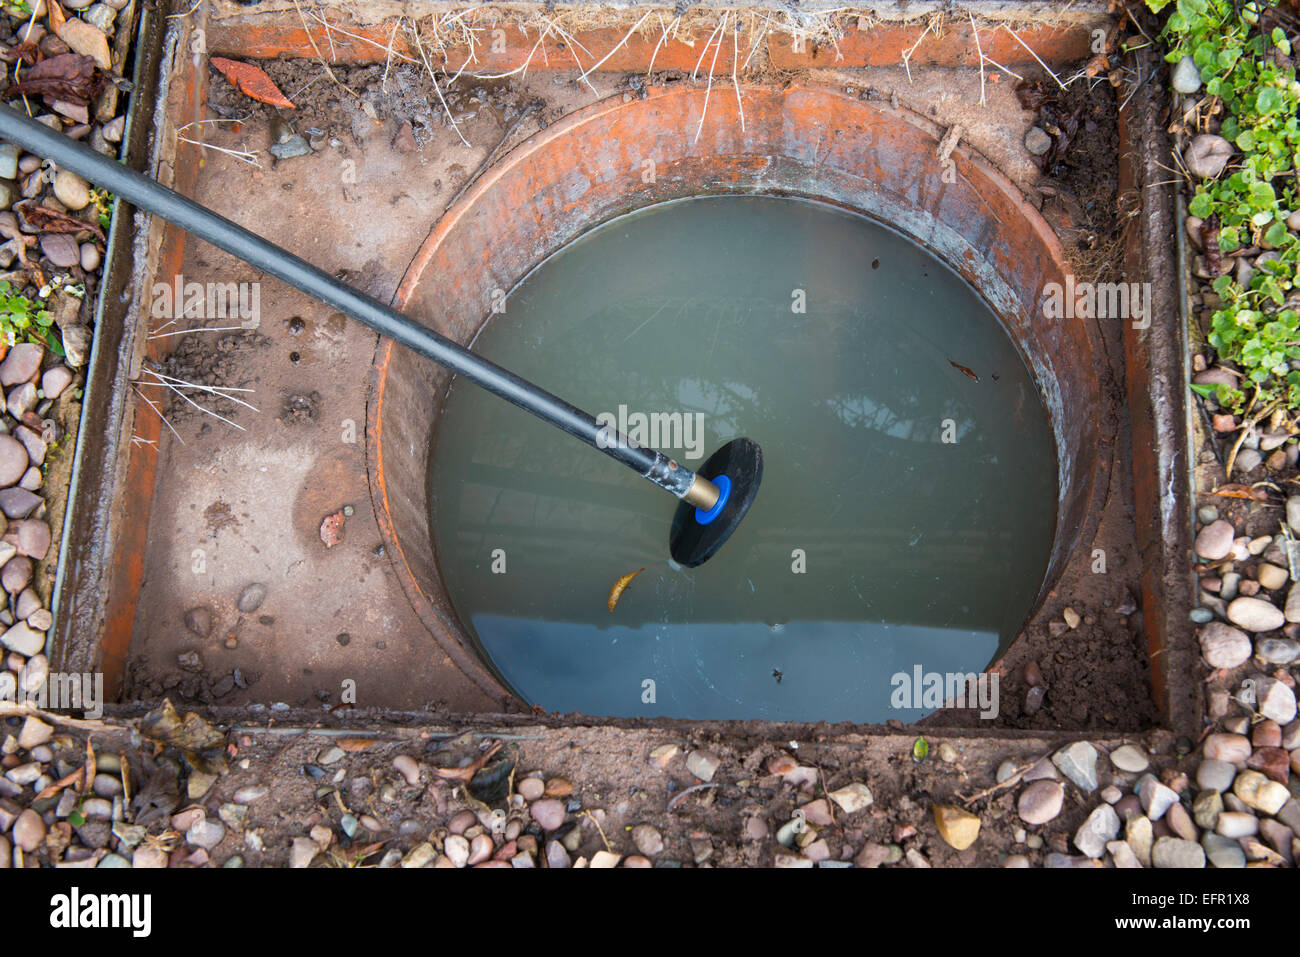 Clearing a blocked house drain with drain rods - Stock Image